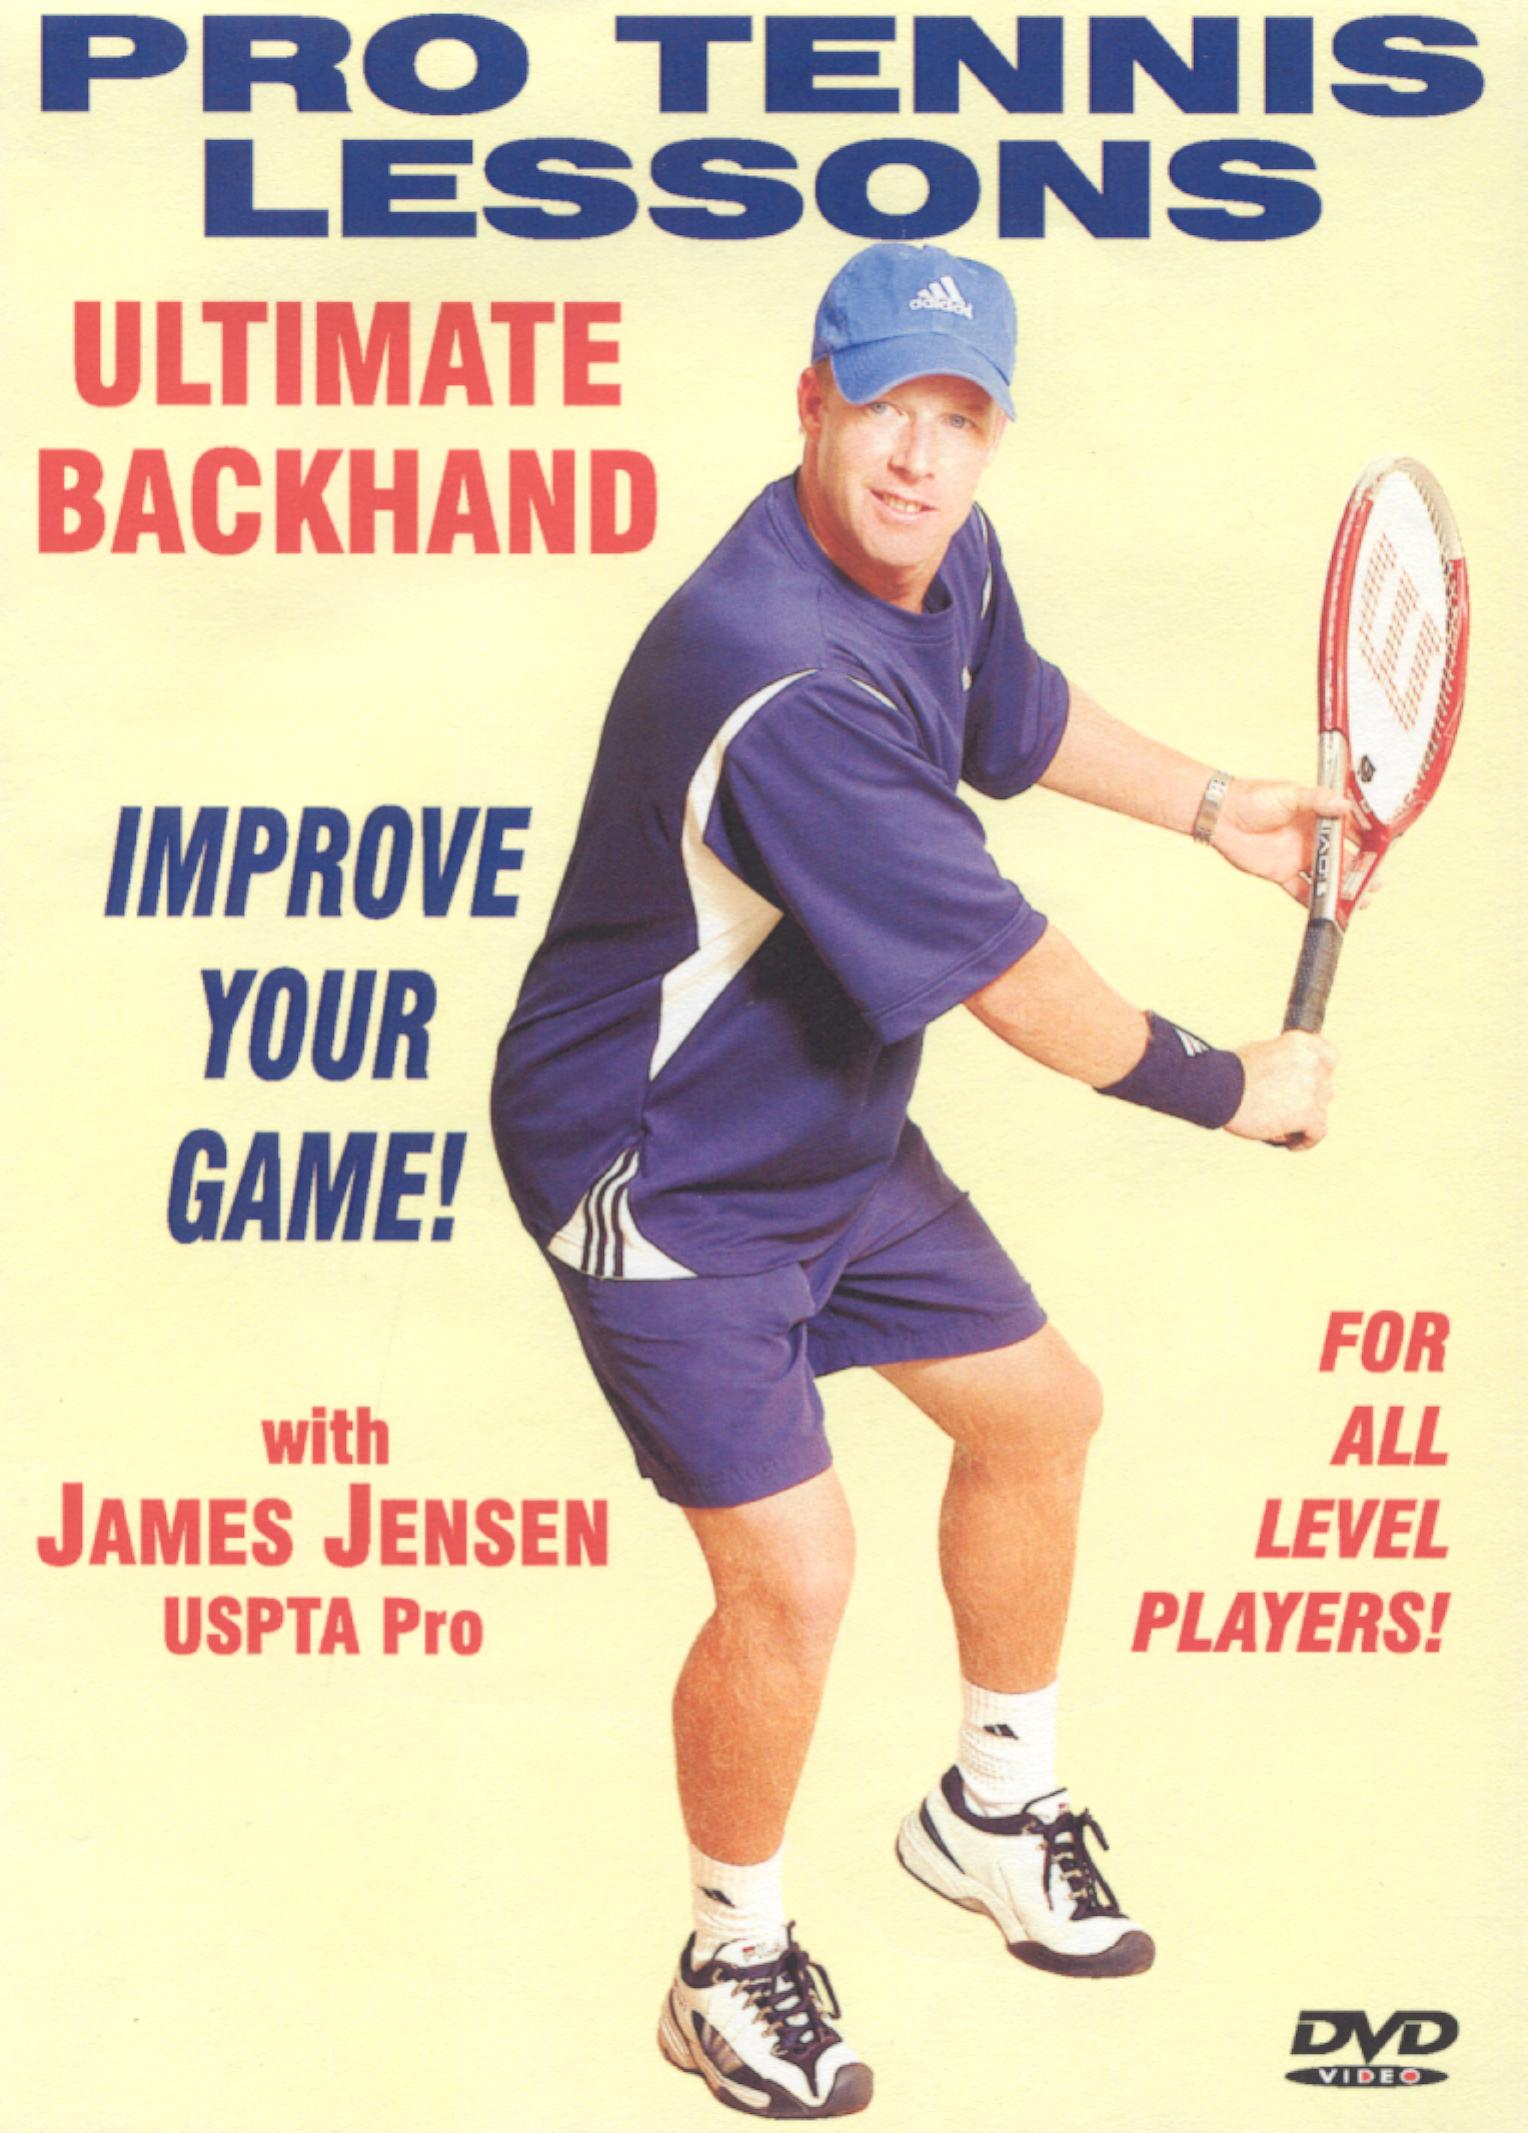 Pro Tennis Lessons: Ultimate Backhand